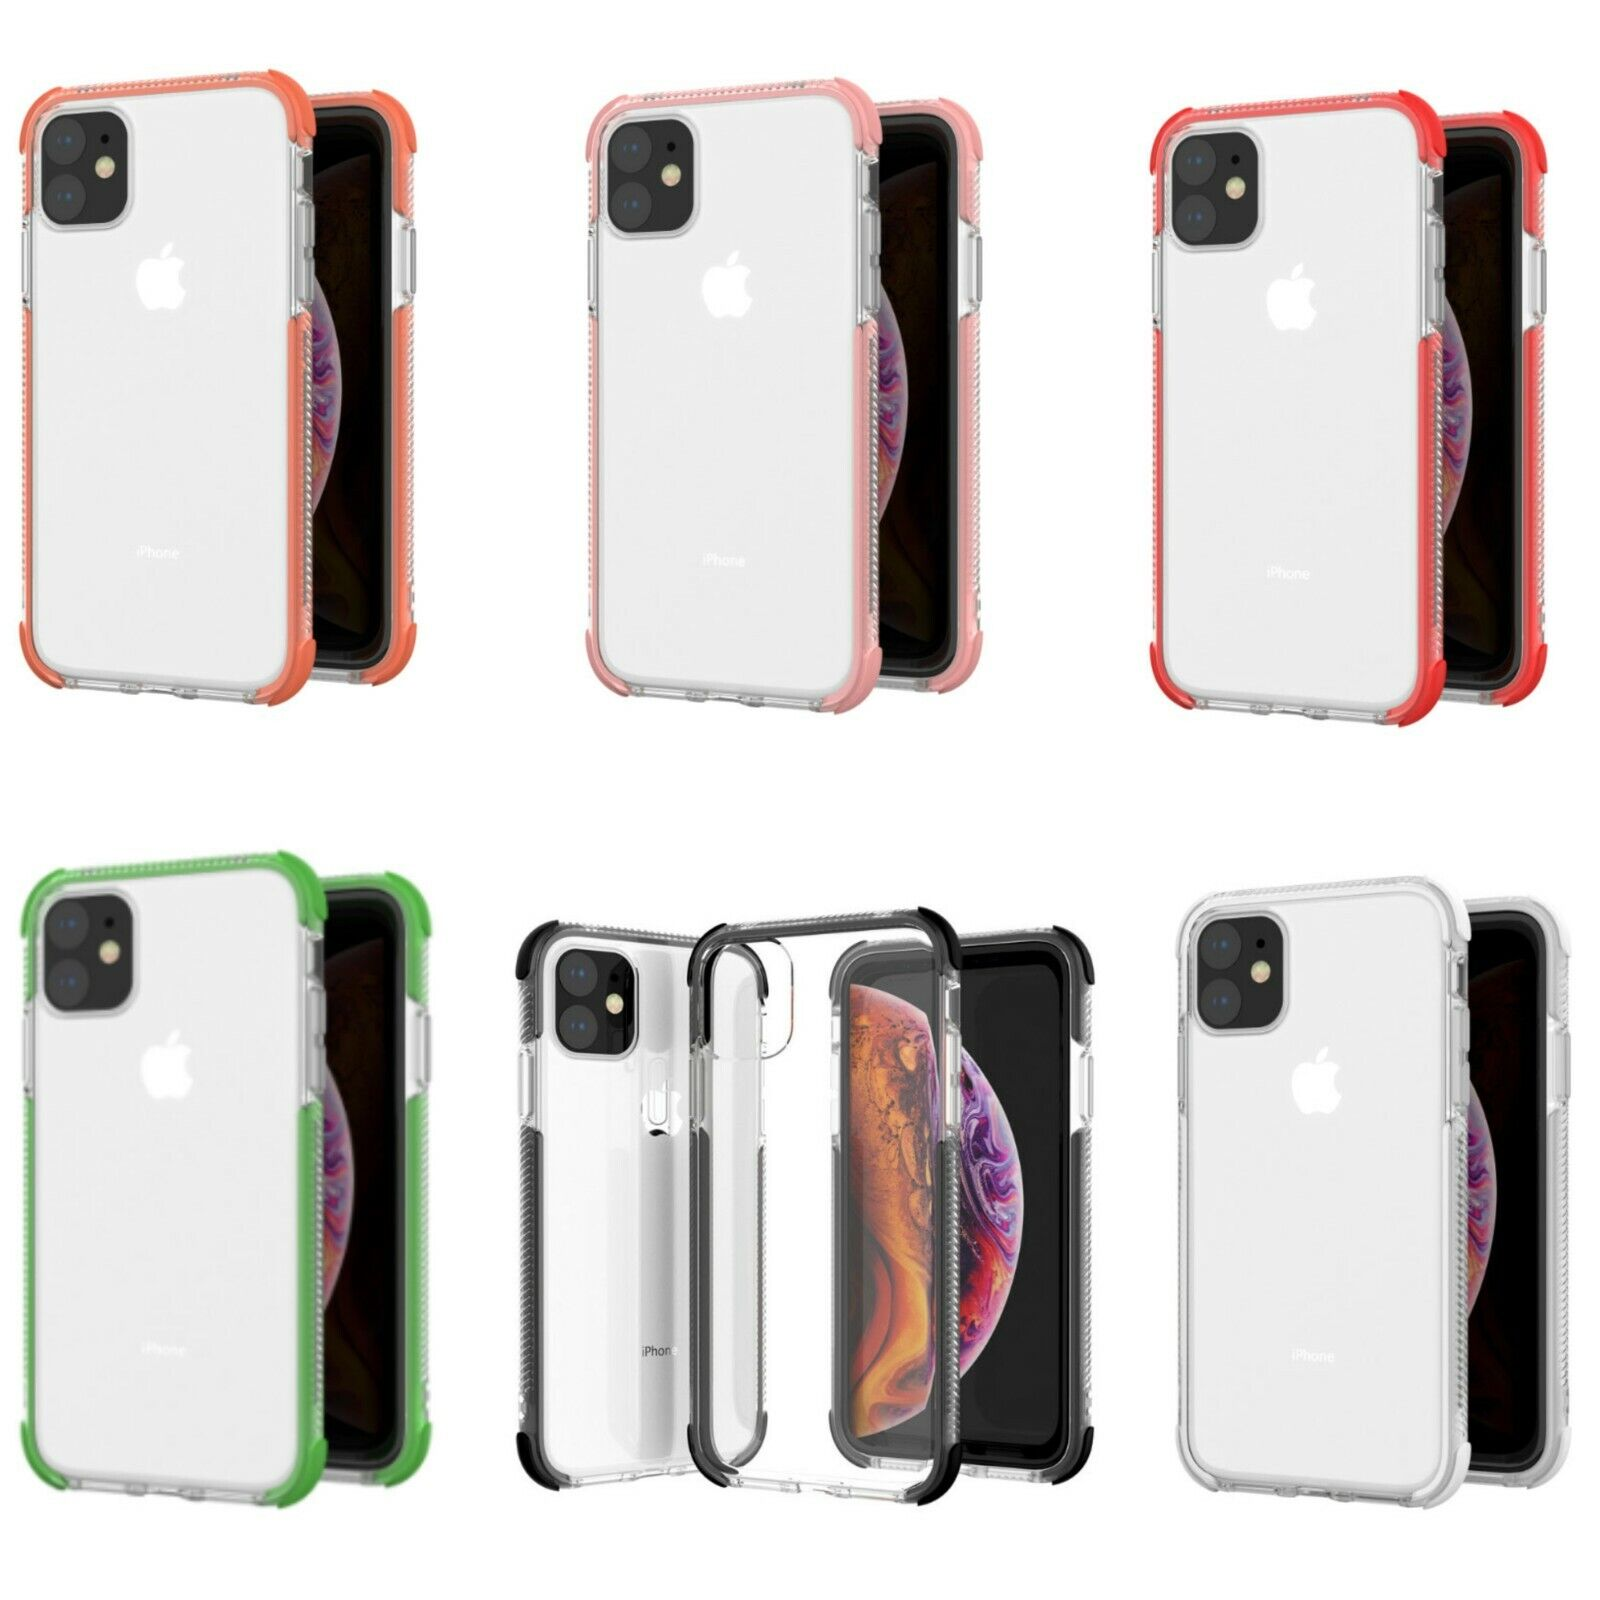 IPhone 11,Pro, XS,XR Max, Shockproof Case with  Protective G